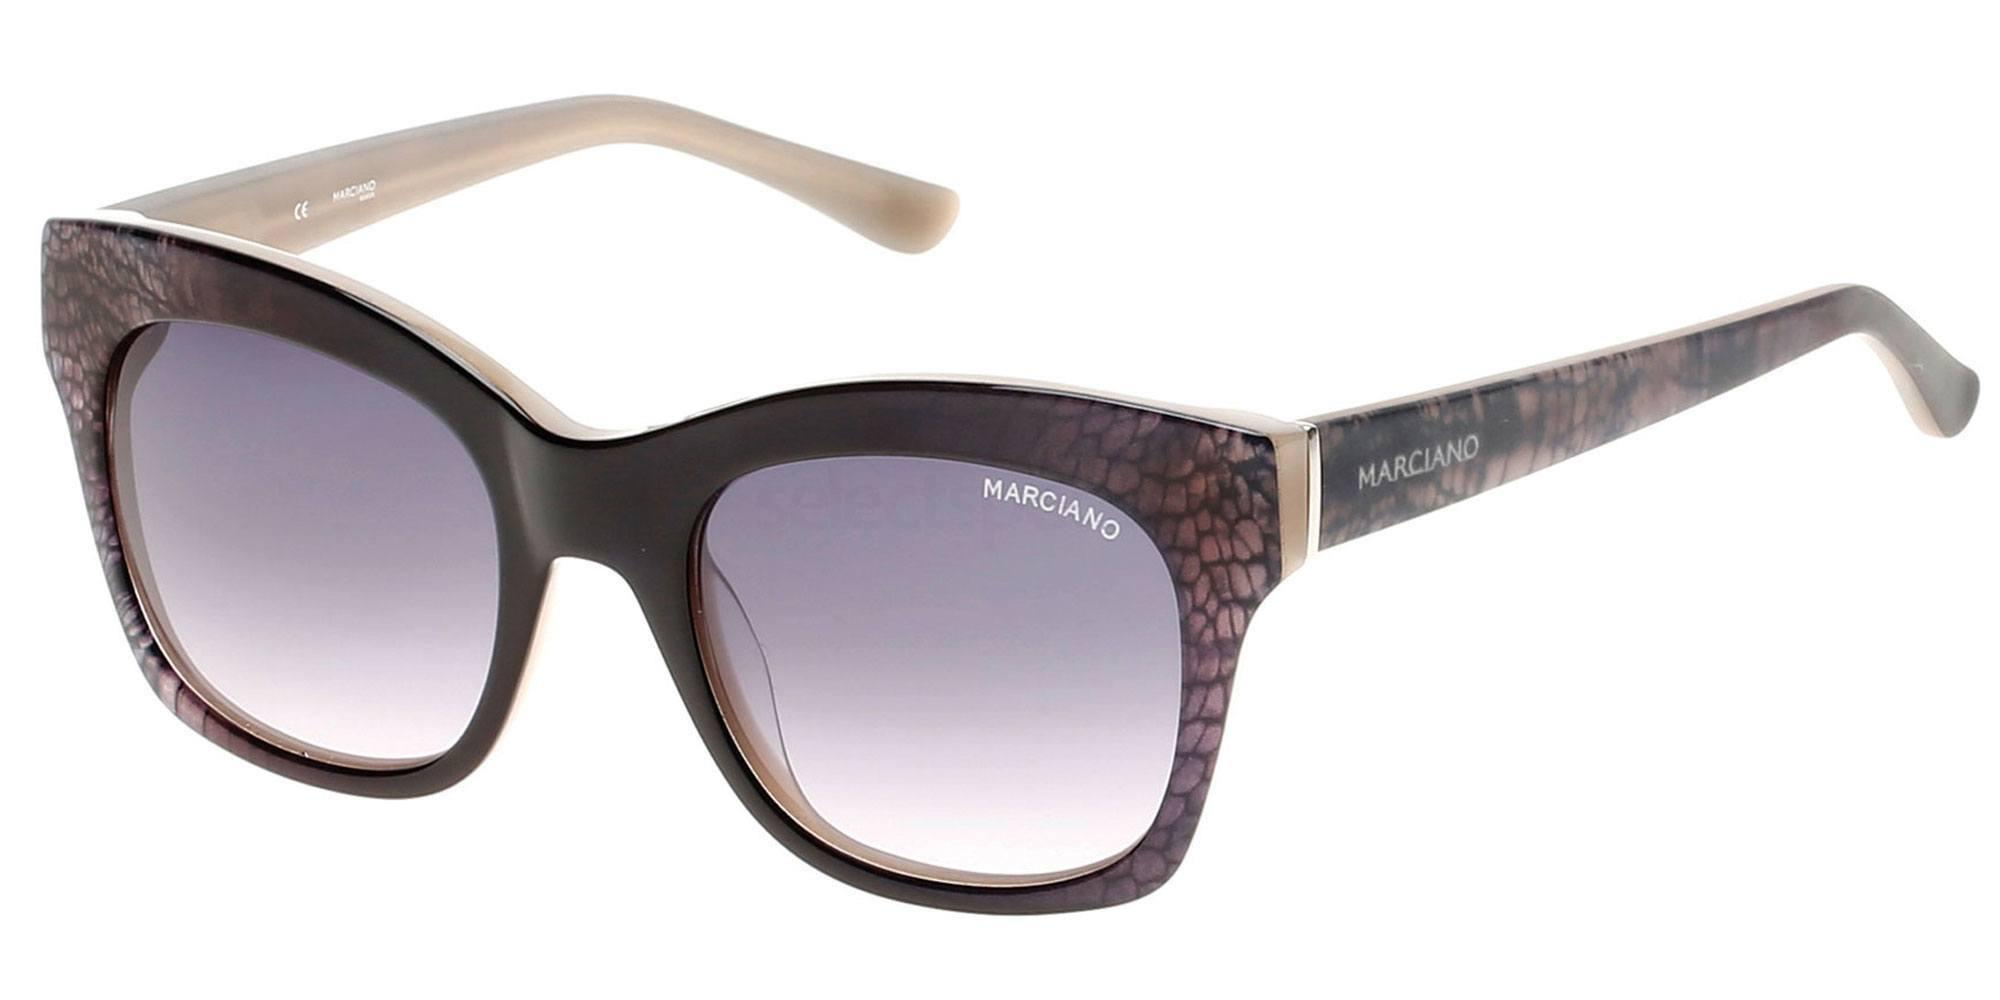 05B GM 728 Sunglasses, Guess by Marciano